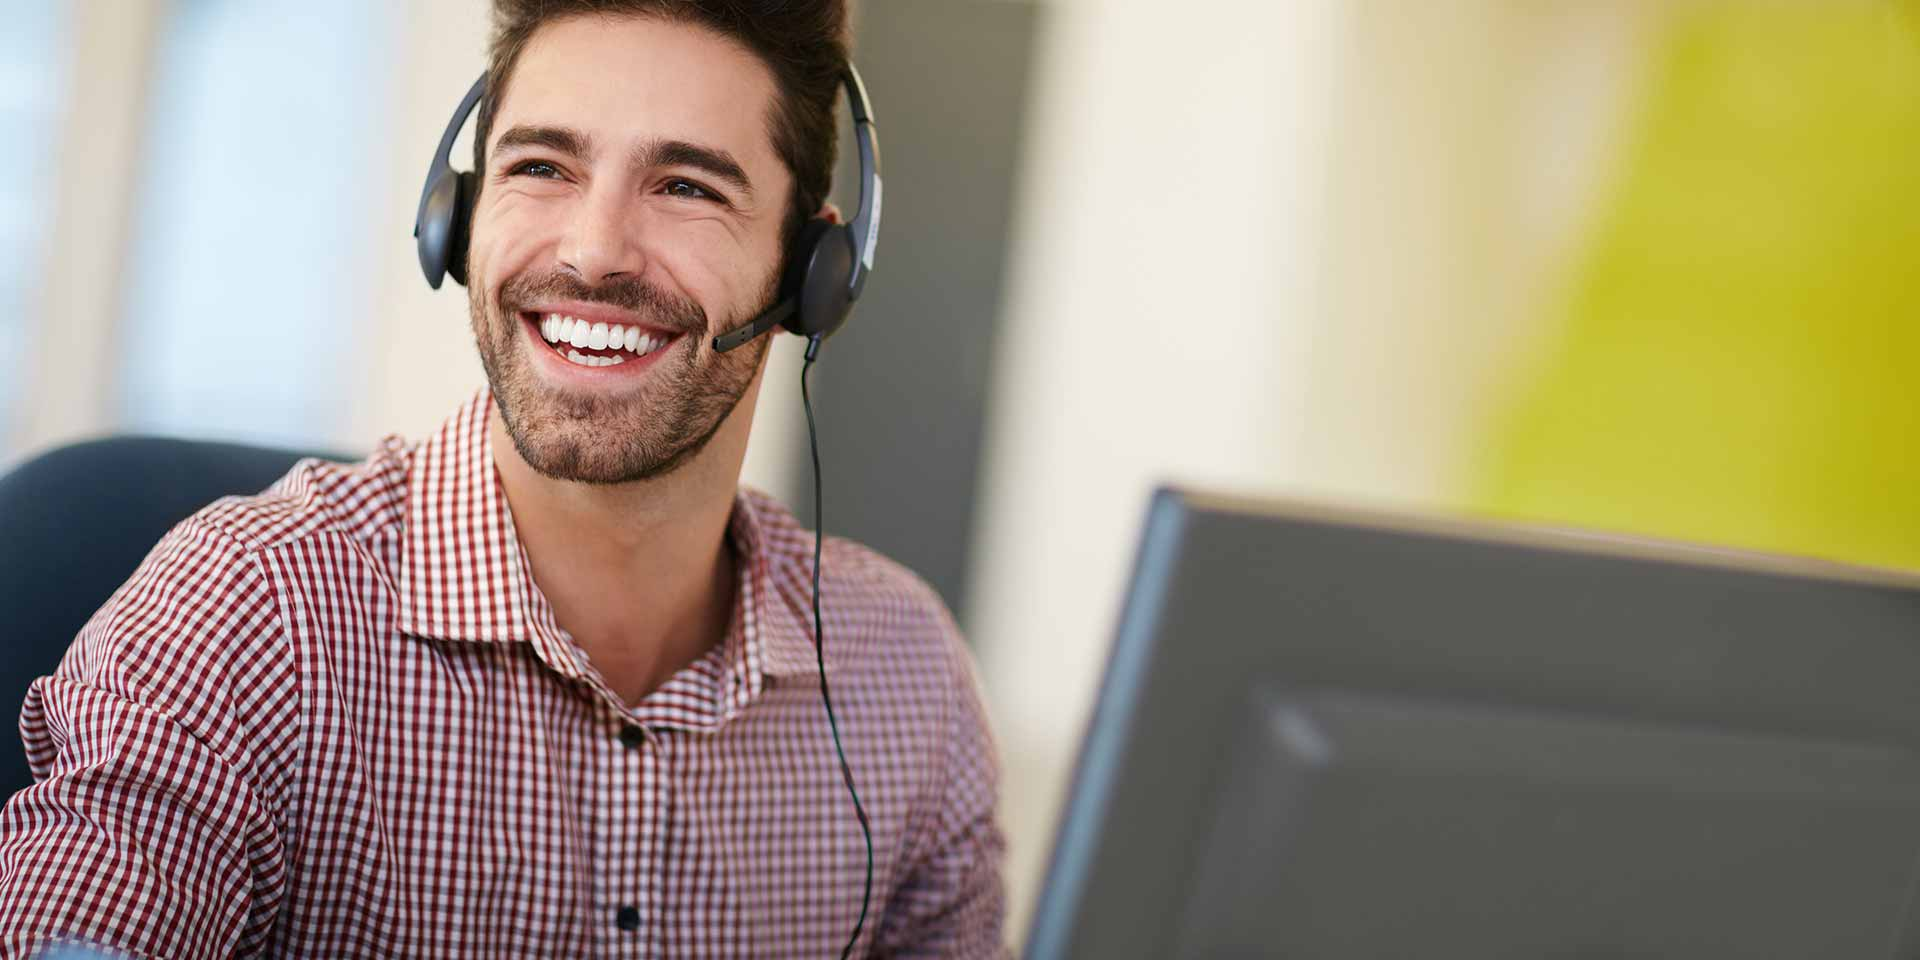 Procare Software - Superior Tech Support